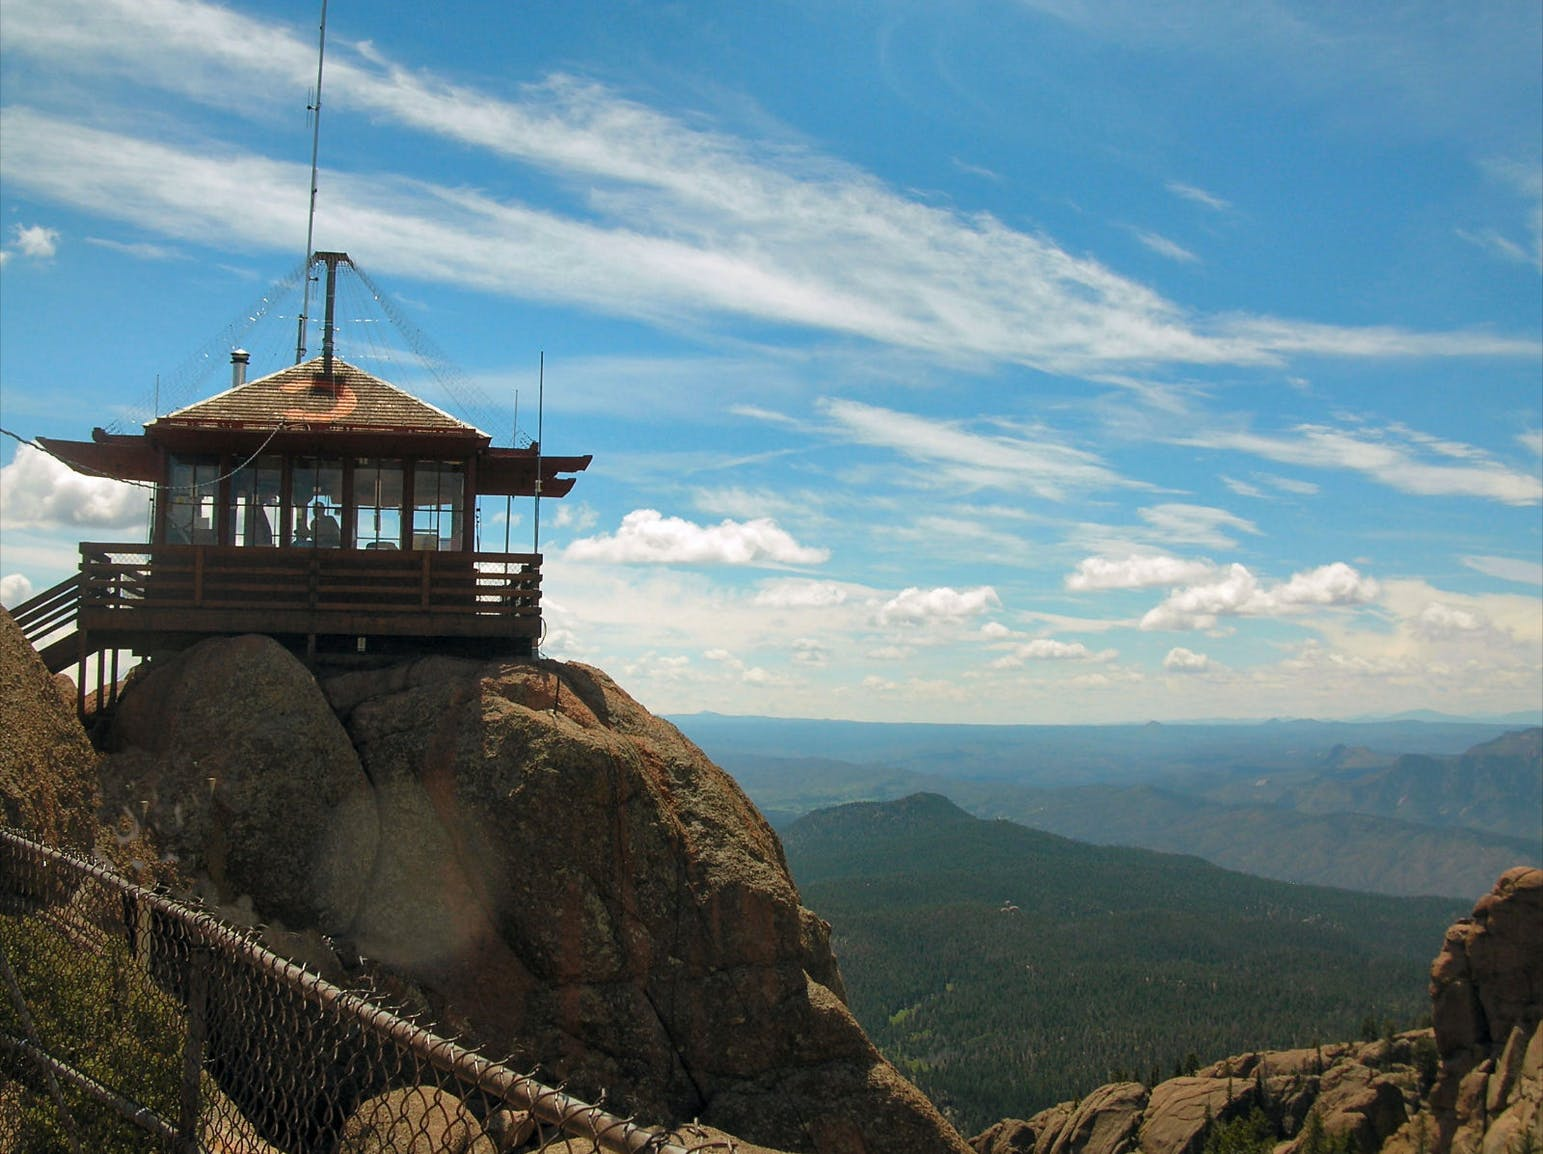 Fire tower sitting on rock cliff over mountain landscape.